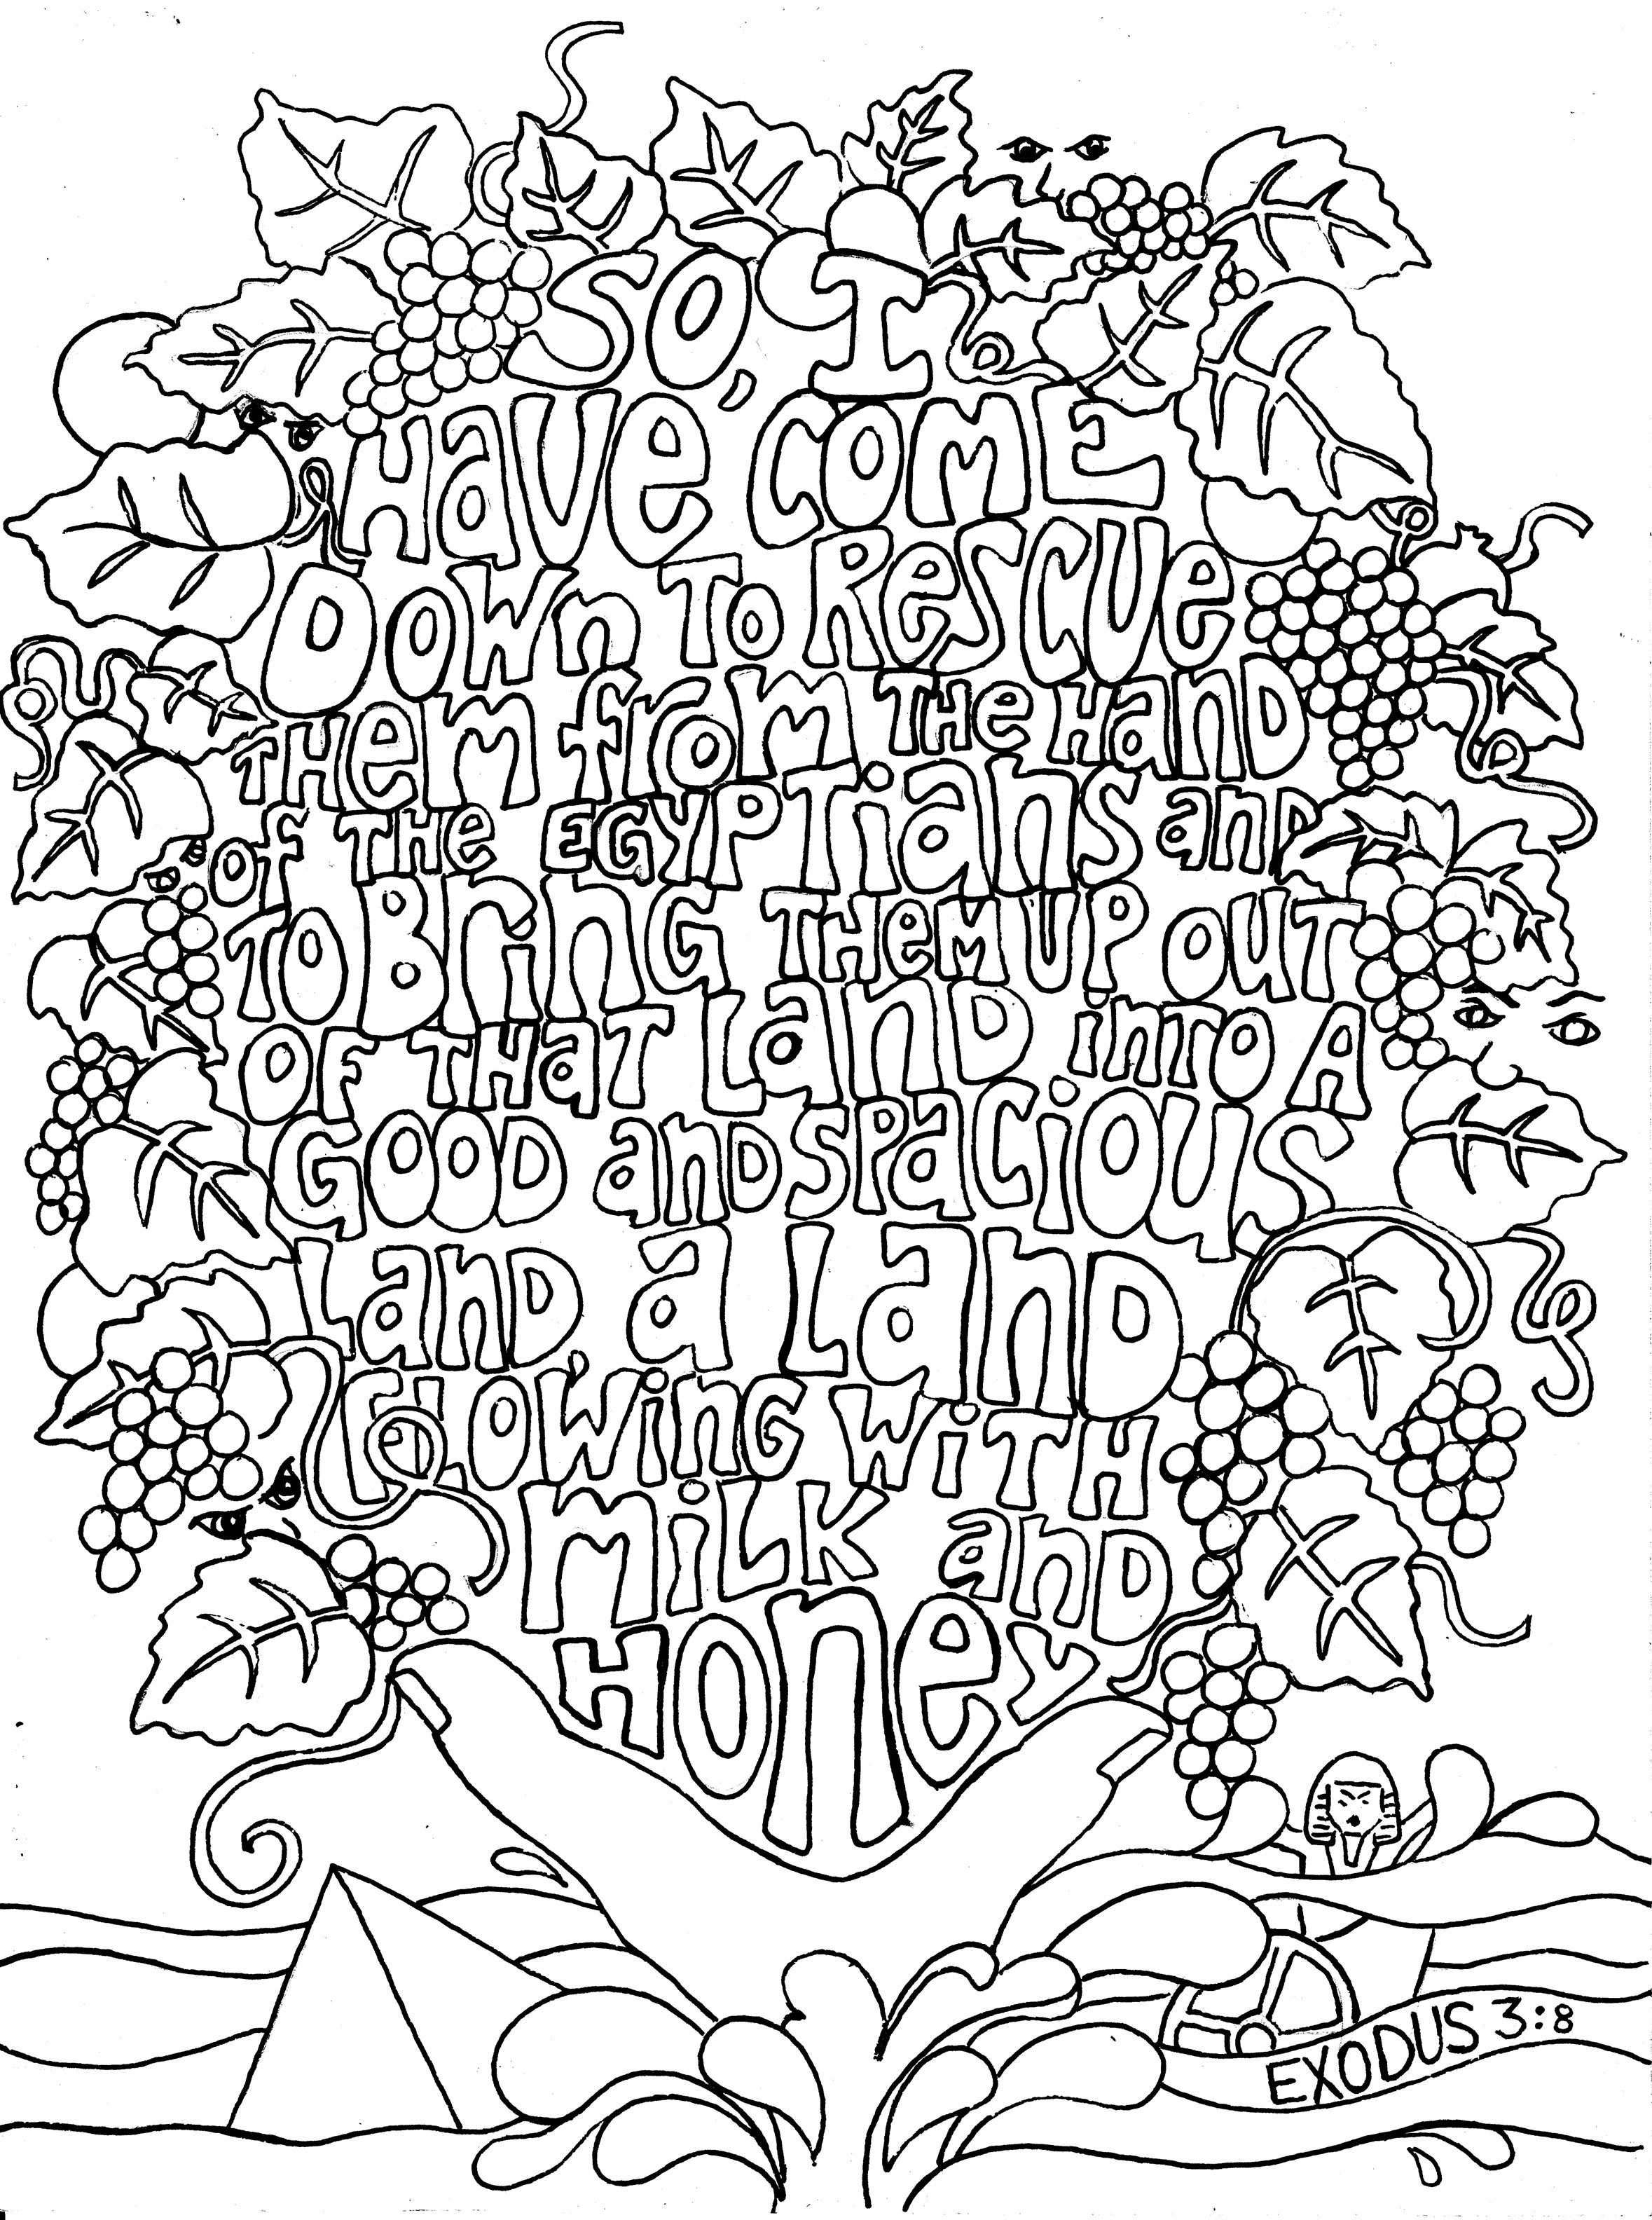 Colouring in for adults why - Exodus 3 8 Adult Colouring In Sheets Of Bible Verses Link Is Courtesy Of A Google